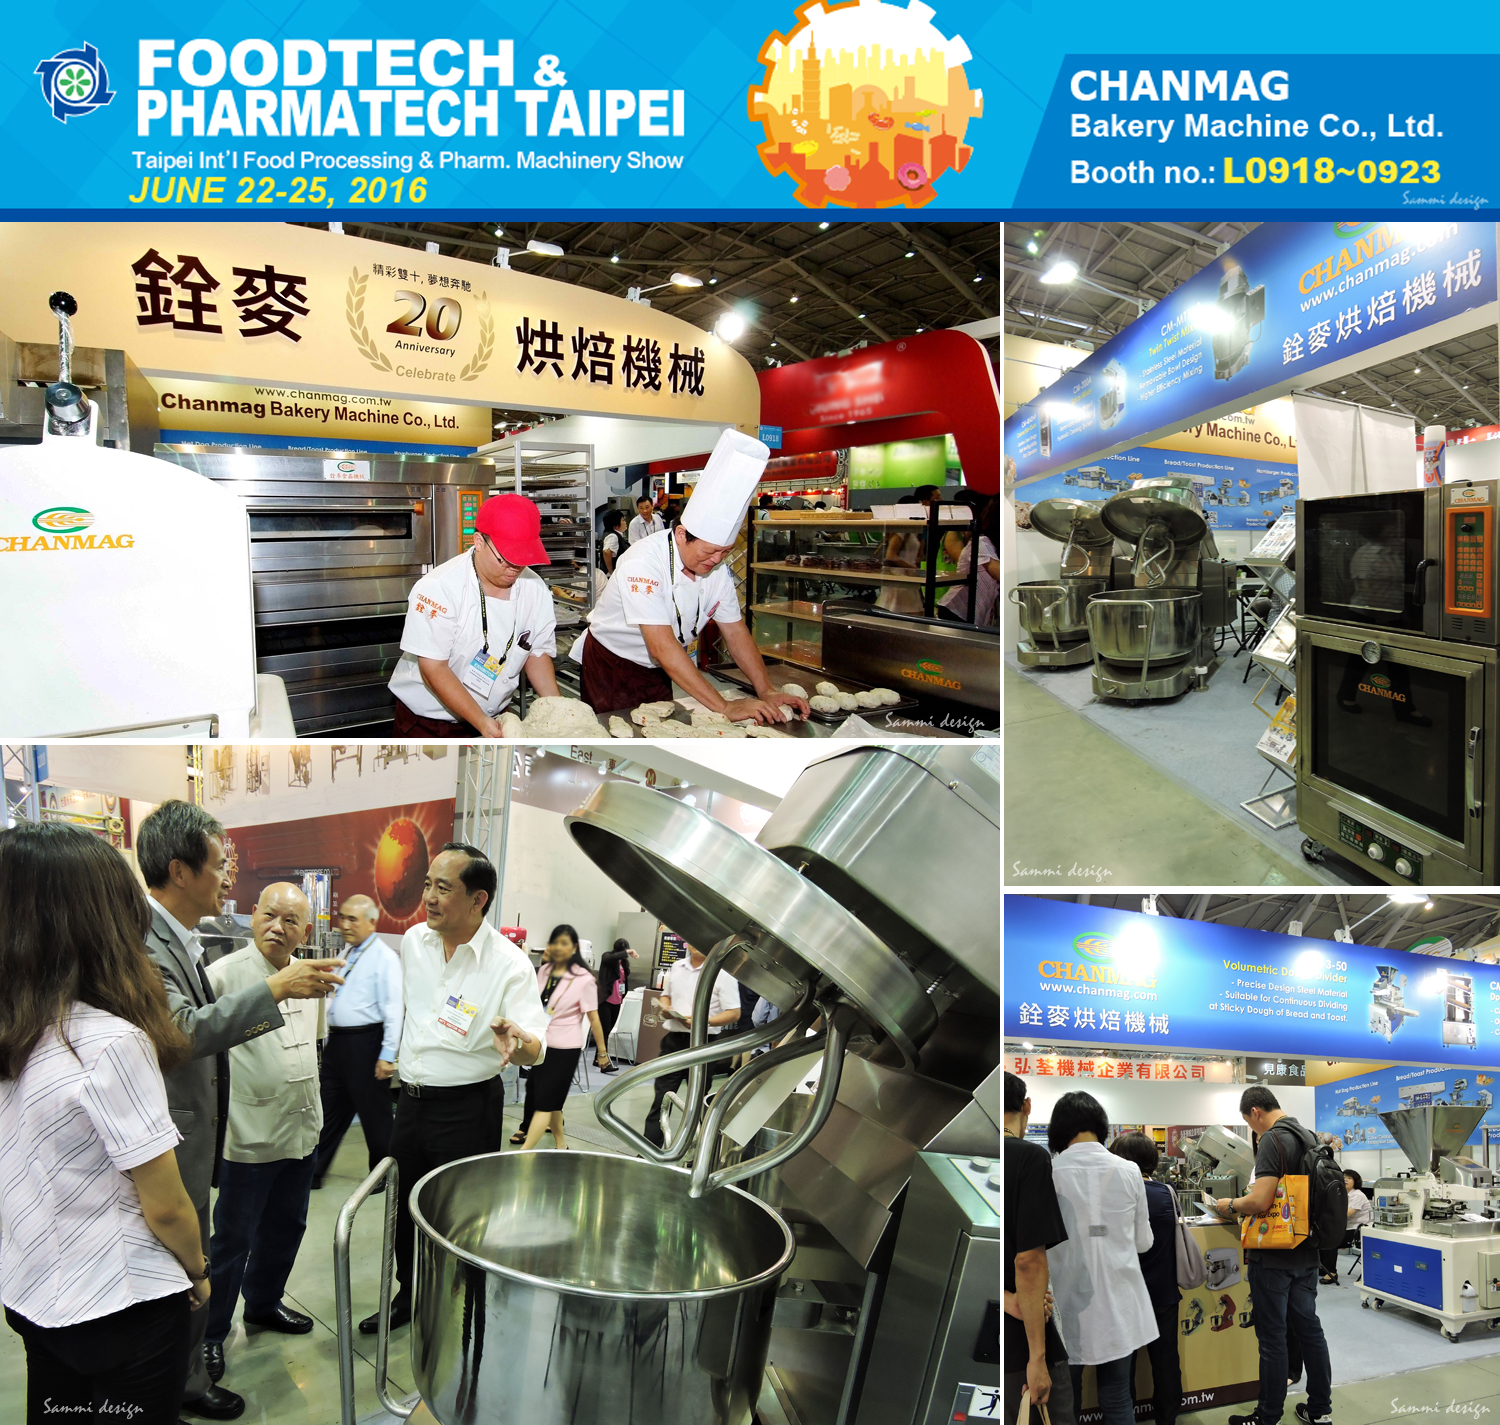 Chanmag Bakery at FOODTECH Taipei Show